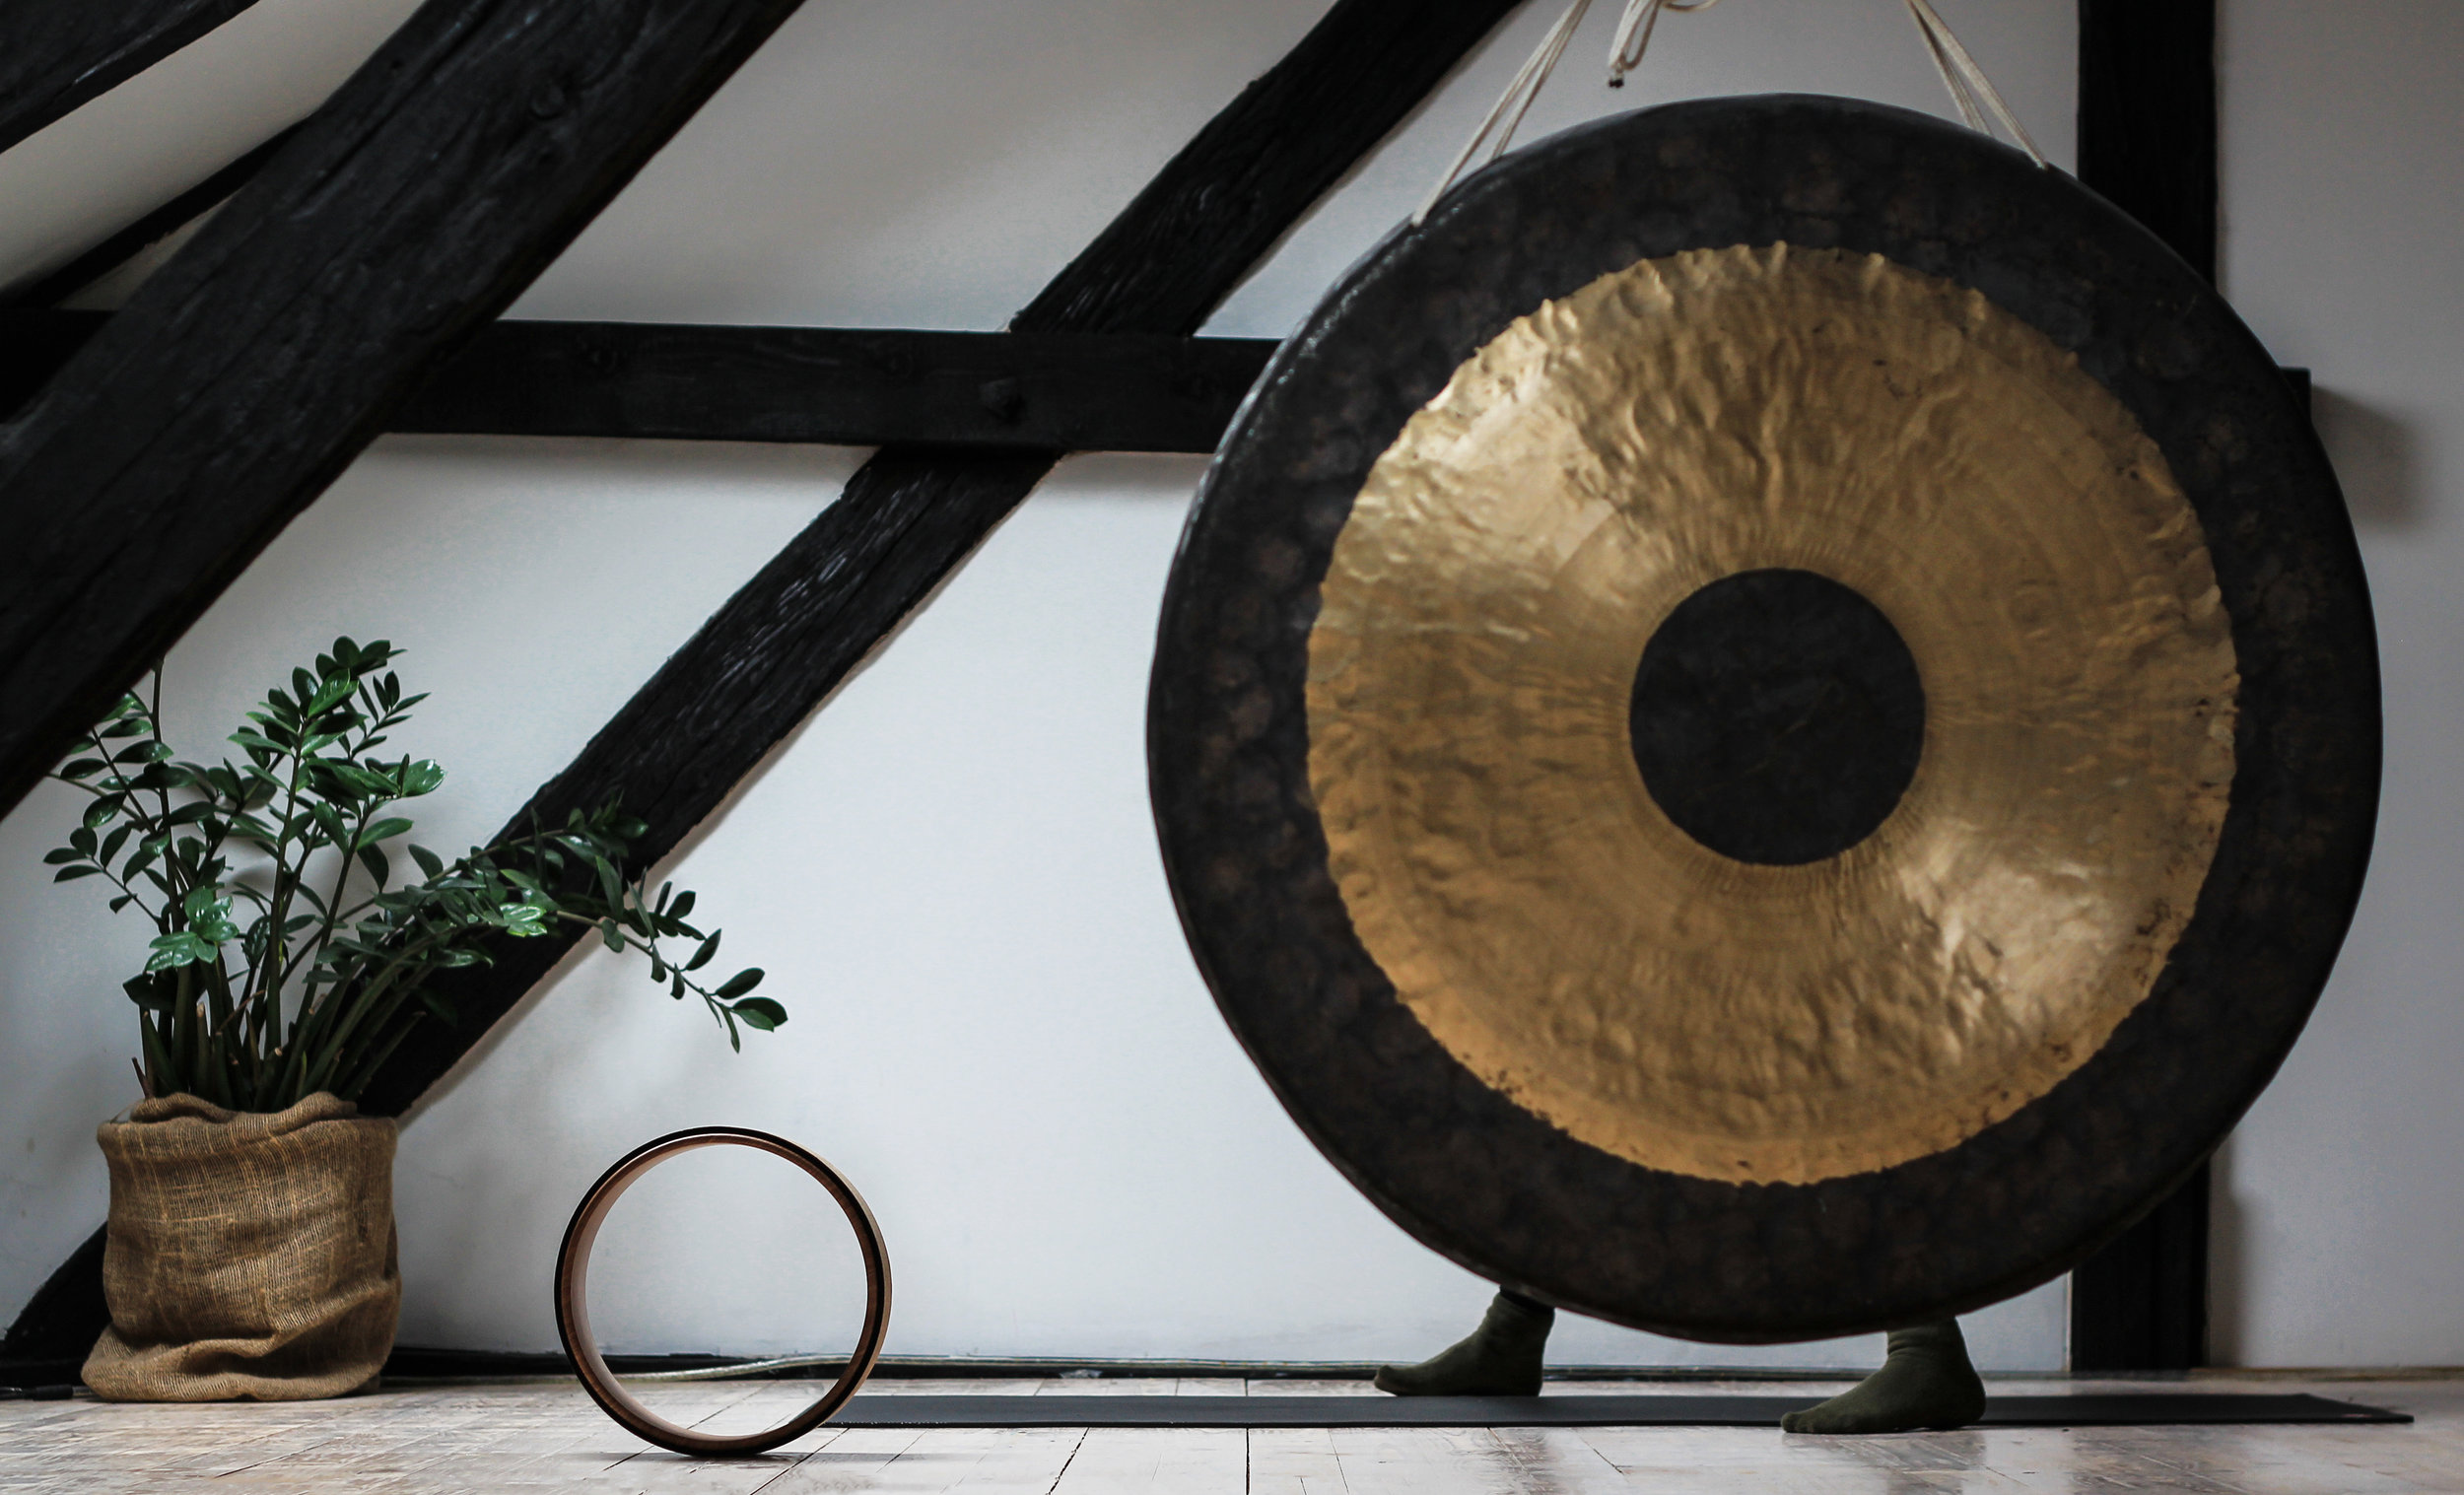 Sound Meditation - An immersive dive into the mysterious healing vibrations of gongs, singing bowls, chimes, and other traditional & neo-traditional instruments.Select Mondays 7pm